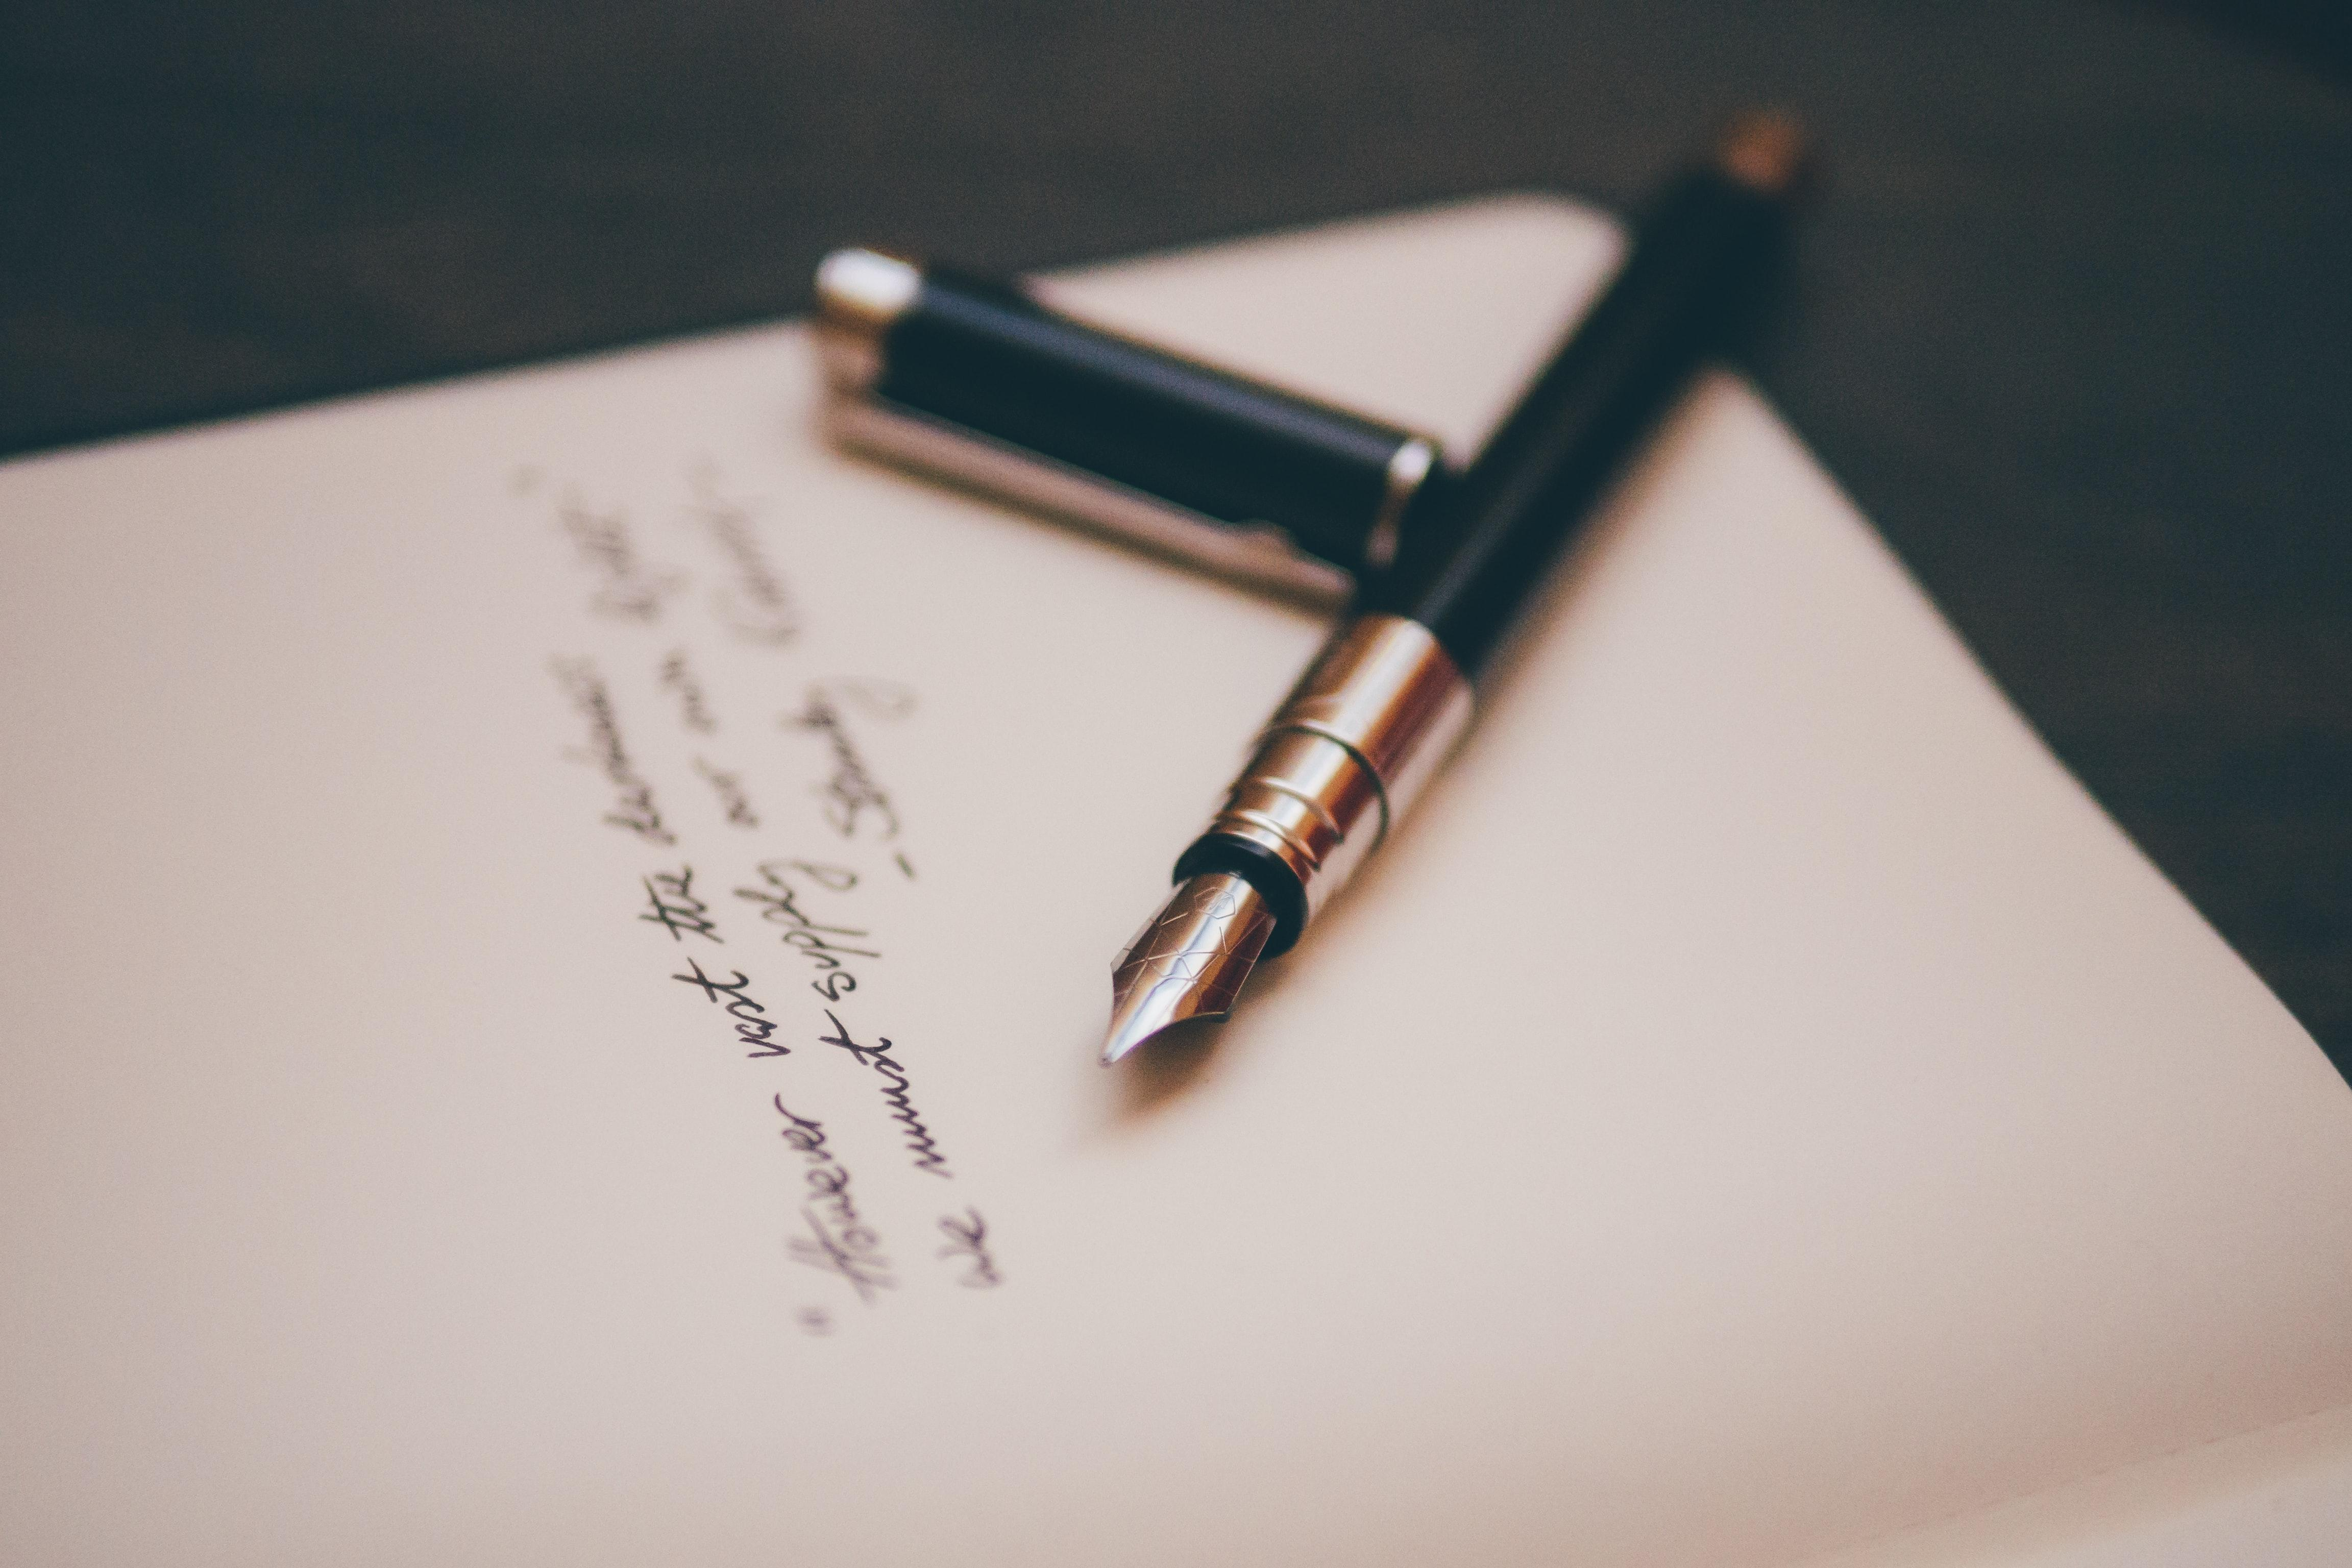 Estate planning mistakes - What they are and how to avoid them Thumbnail